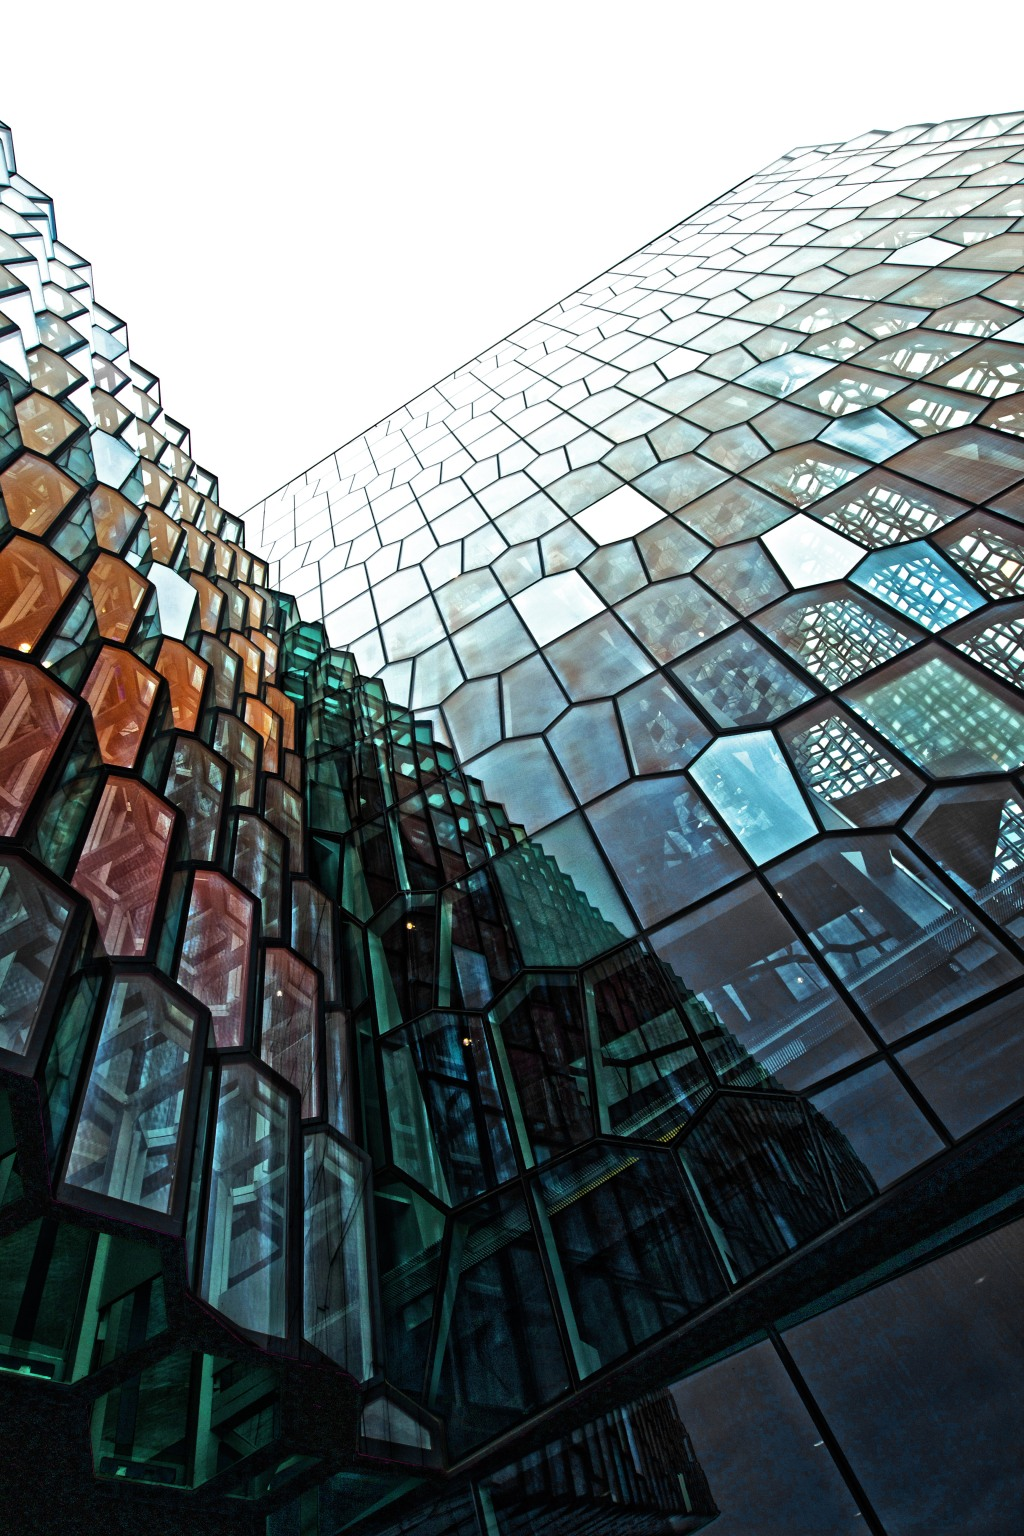 Harpa Concert Hall...informally referred to on our trip as the Opera House. Perched overlooking the Northern Atlantic Ocean-it's a stunning facade on the edge of the city. Extra treat: Lit up at night with varying LED displays. Canon T3i, Sigma 11mm, ISO 100, f/5, 1/80